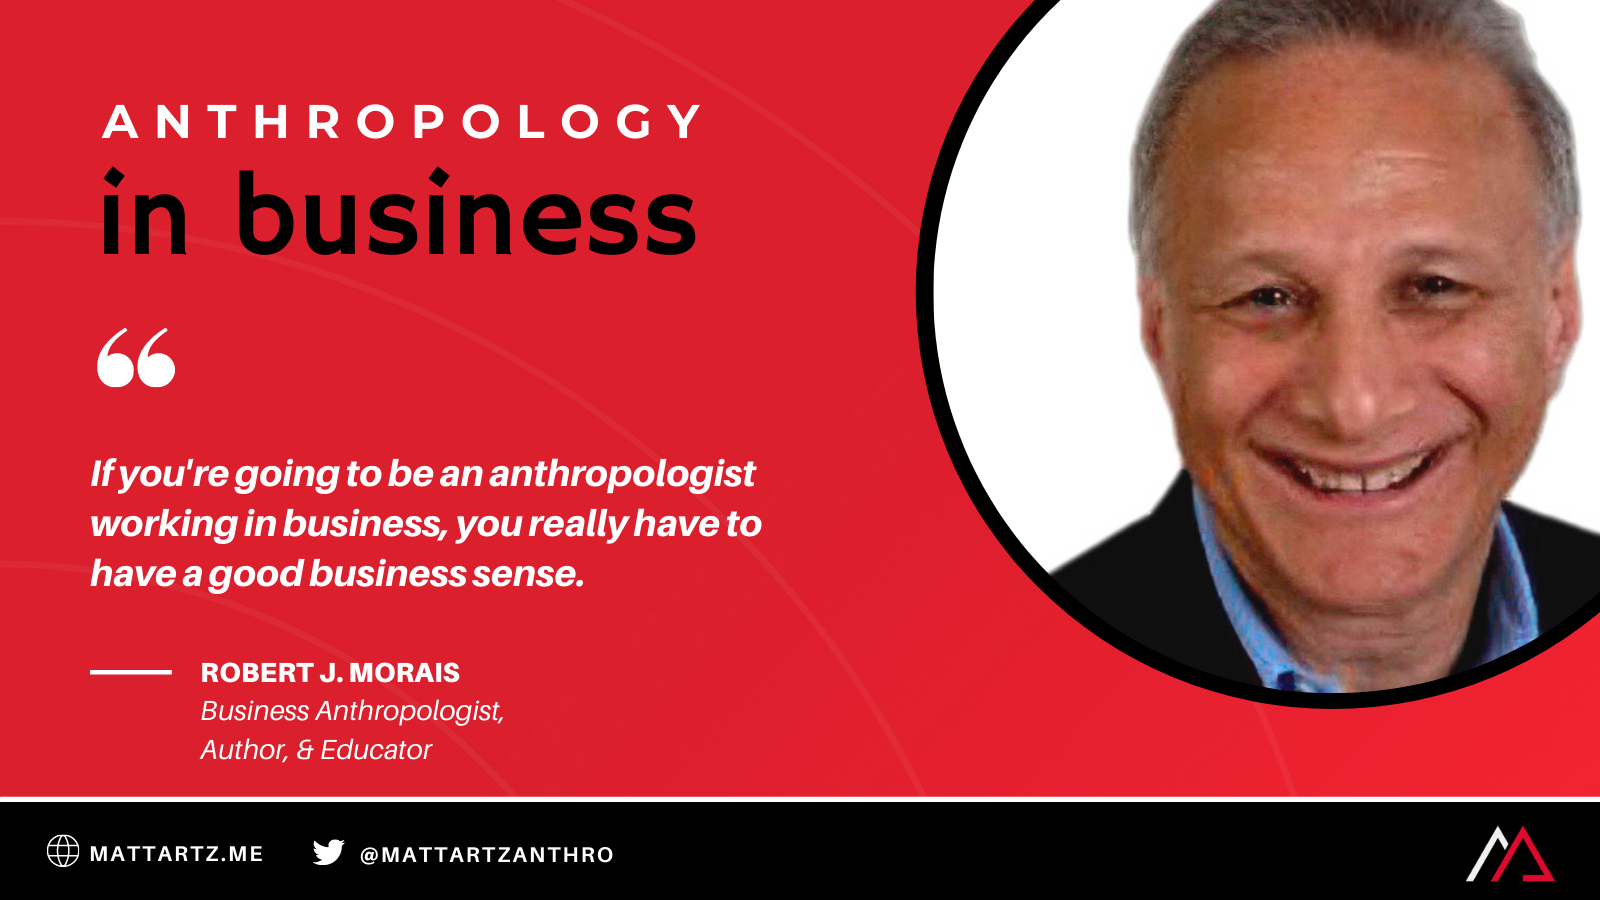 Robert J. Morais on the Anthropology in Business Podcast with Matt Artz